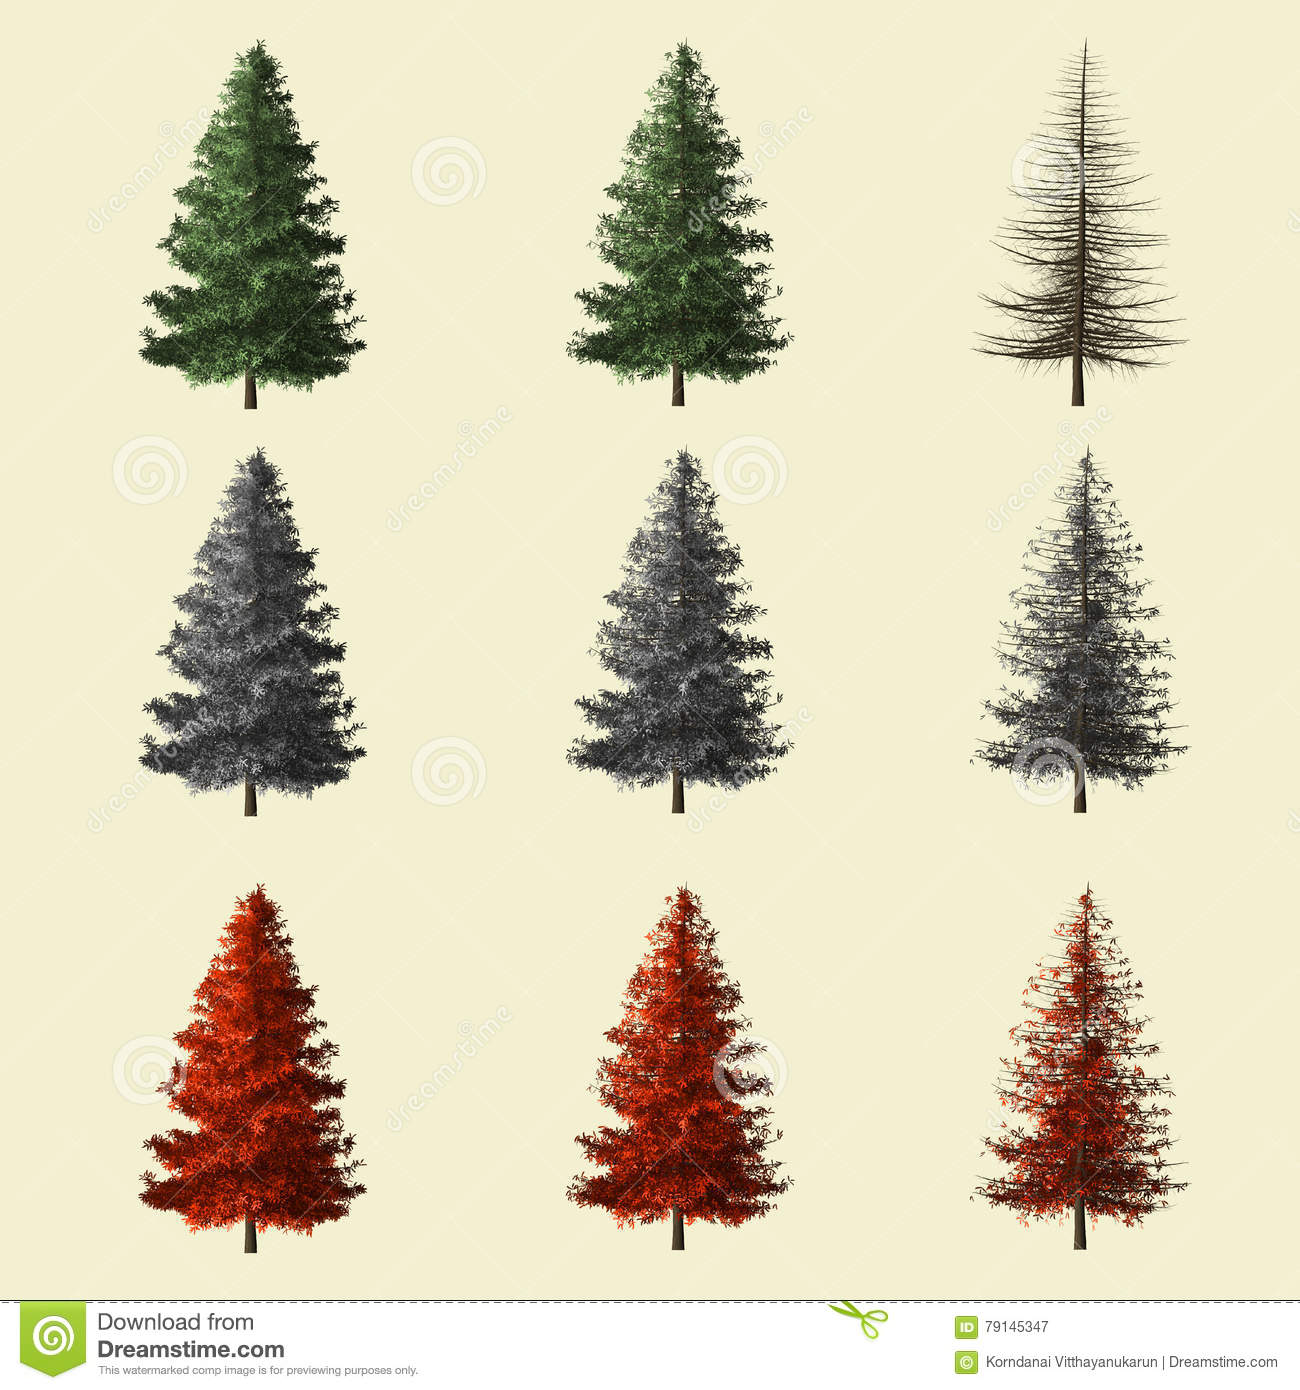 Spruce tree 3d rendering isolated for landscape designer stock image image of nature forest - Autumn plowing time all set for winter ...